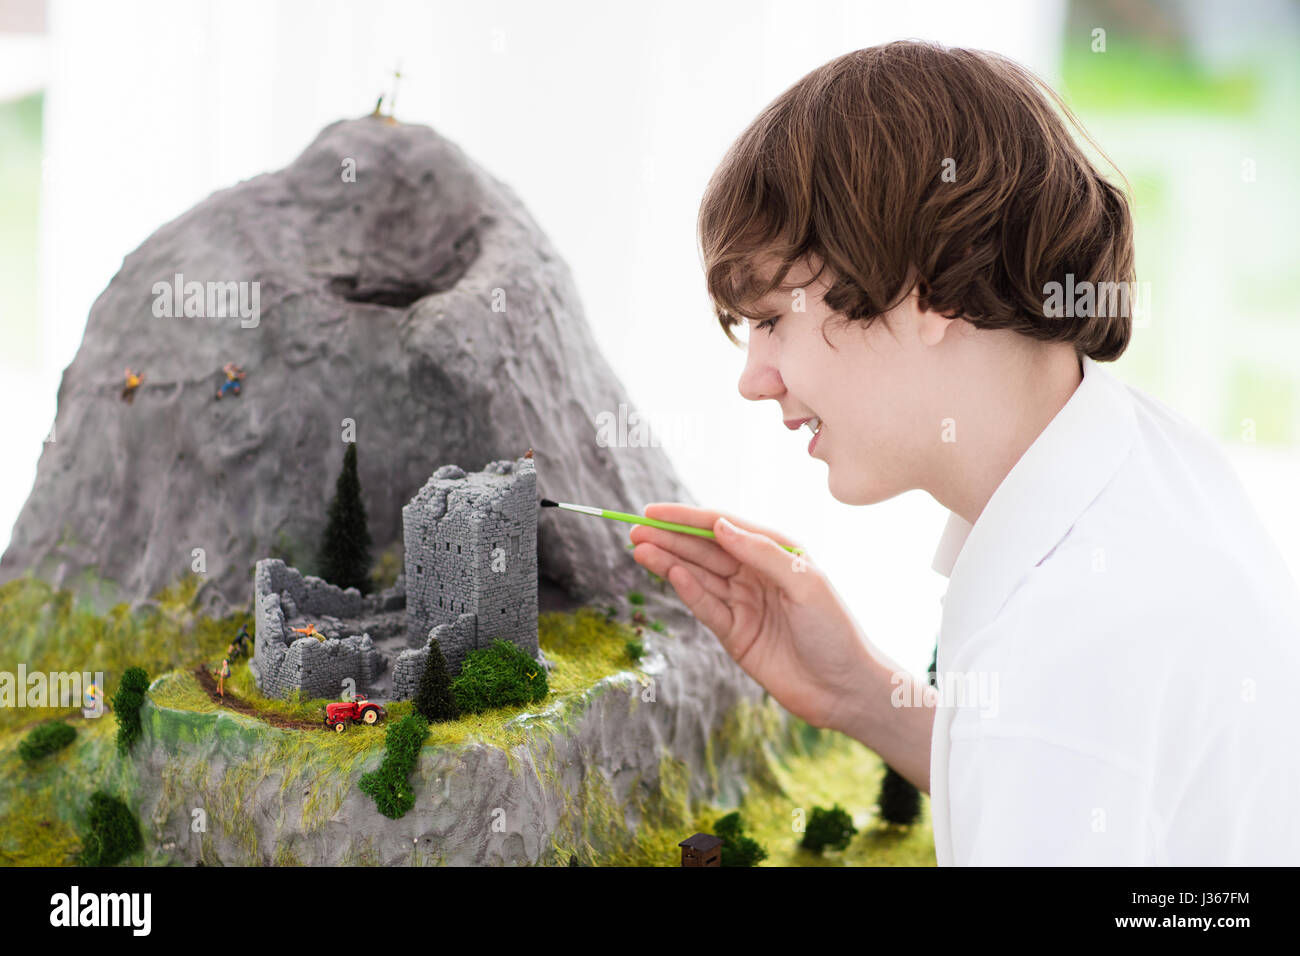 Teenager working on model building school project. Kids build miniature scale model mountain for geography class - Stock Image